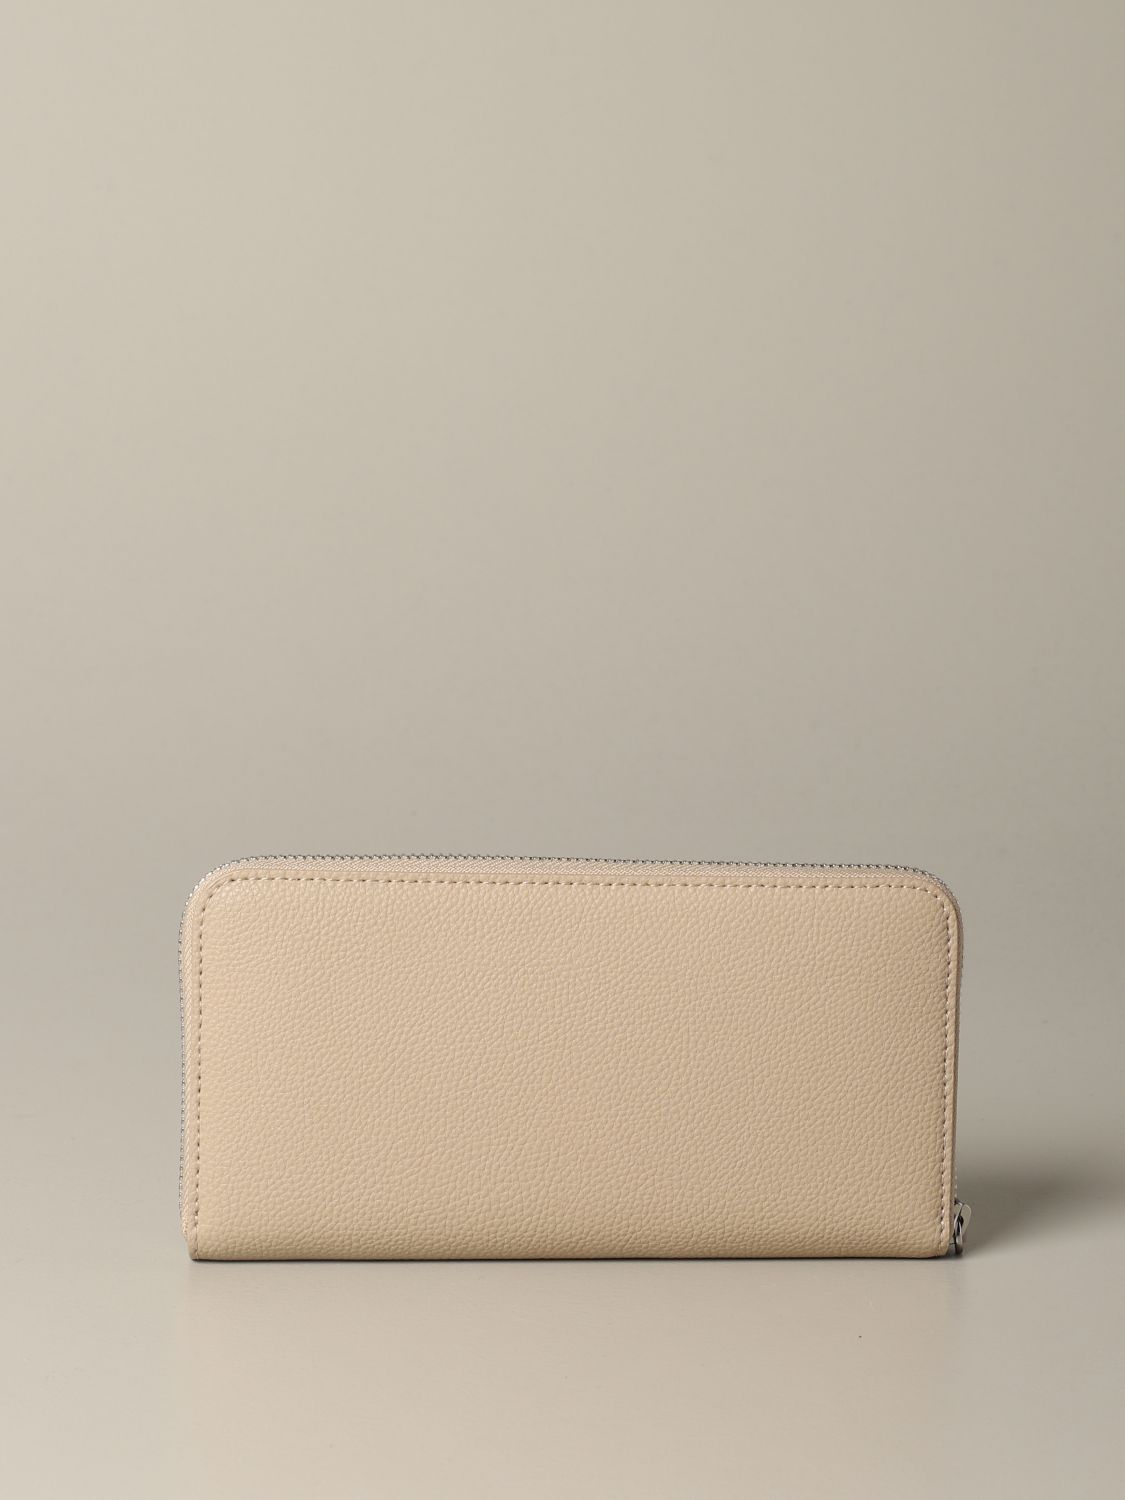 Wallet women Pinko beige 3